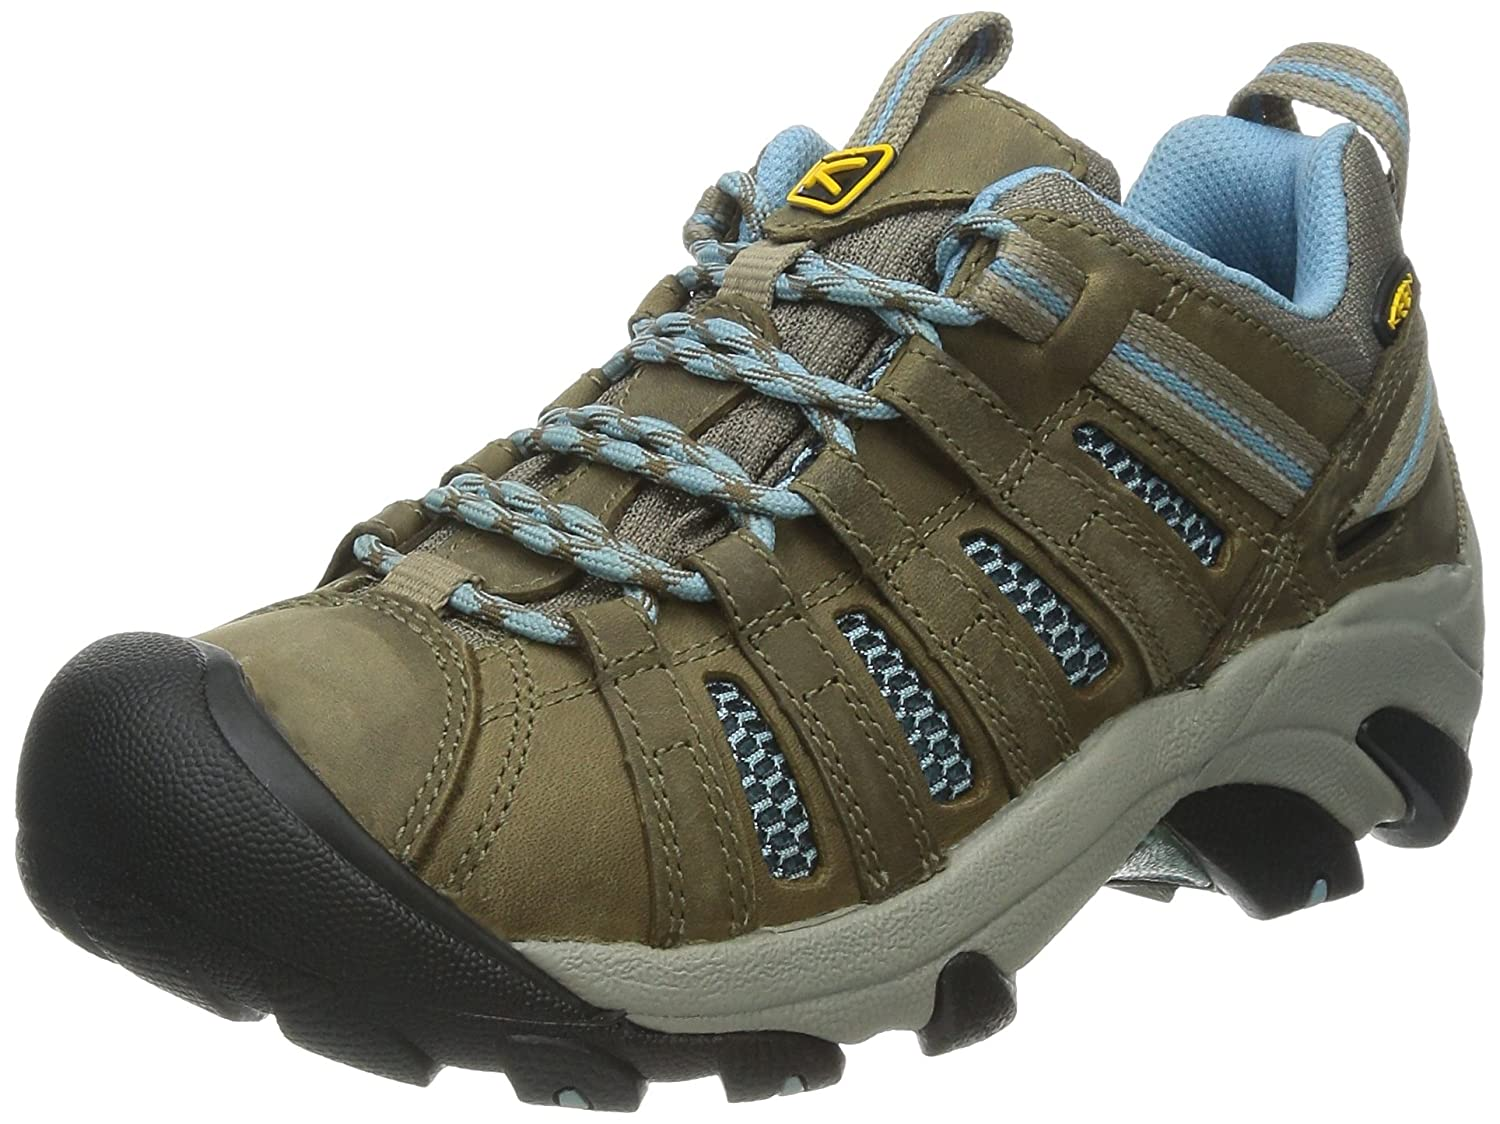 KEEN Women's Voyageur Hiking Shoe B00HGAGBQE 10 B(M) US|Brindle/Alaskan Blue